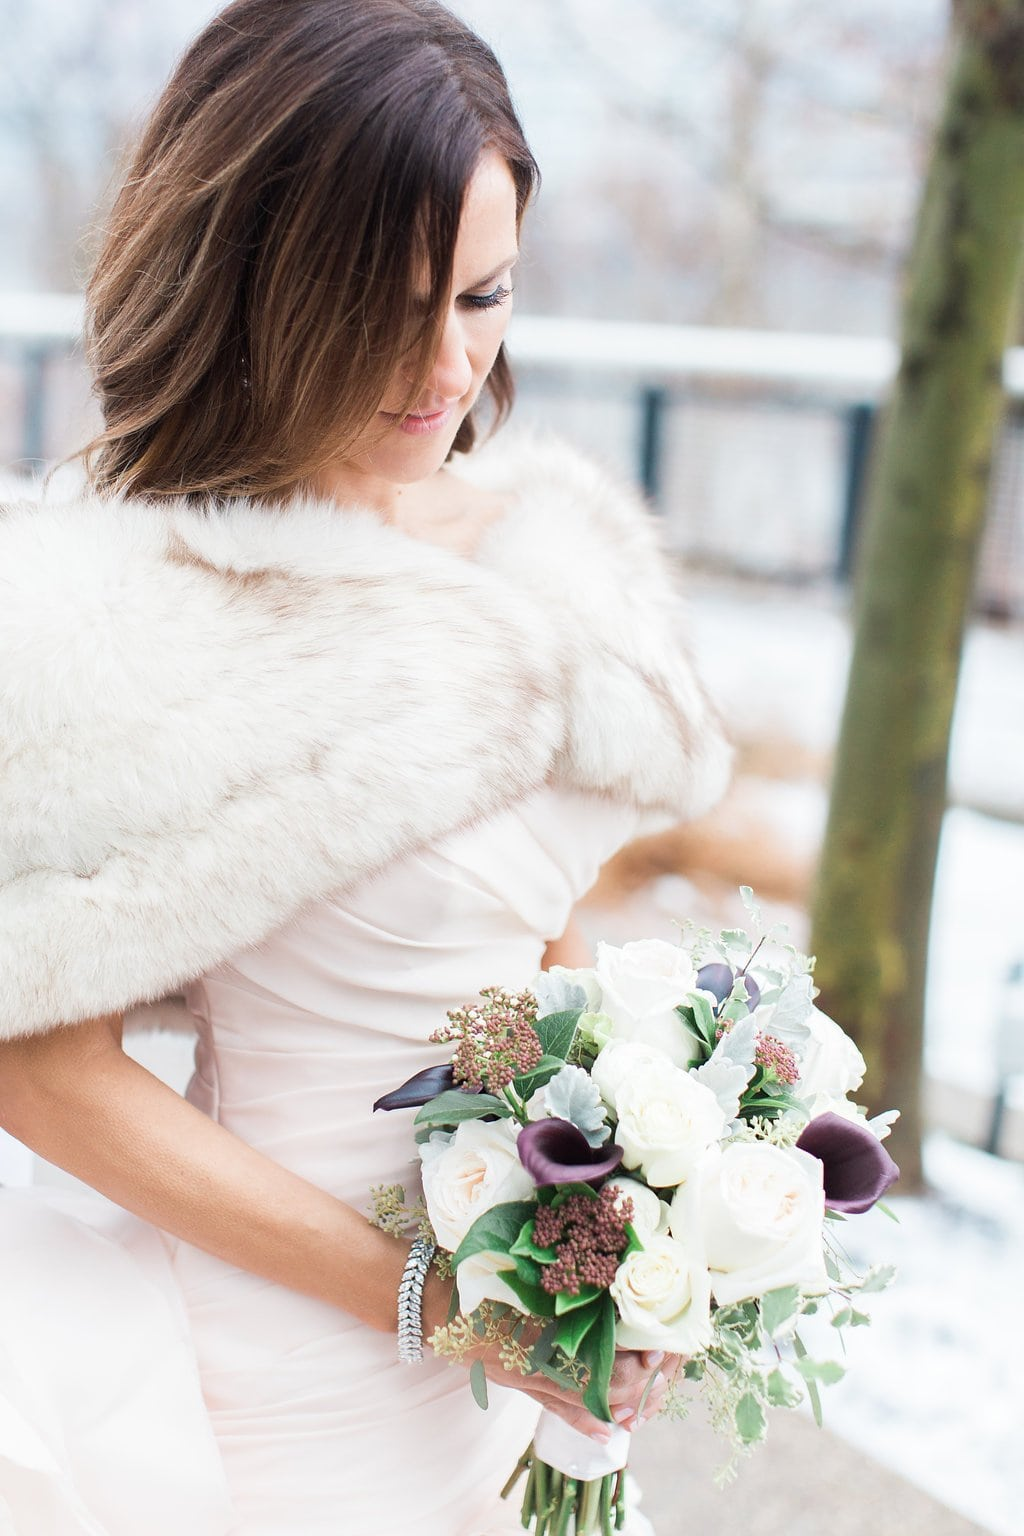 Photo of the bride out in the snow with fur shawl and bouquet - J Verno Studios Winter Wedding